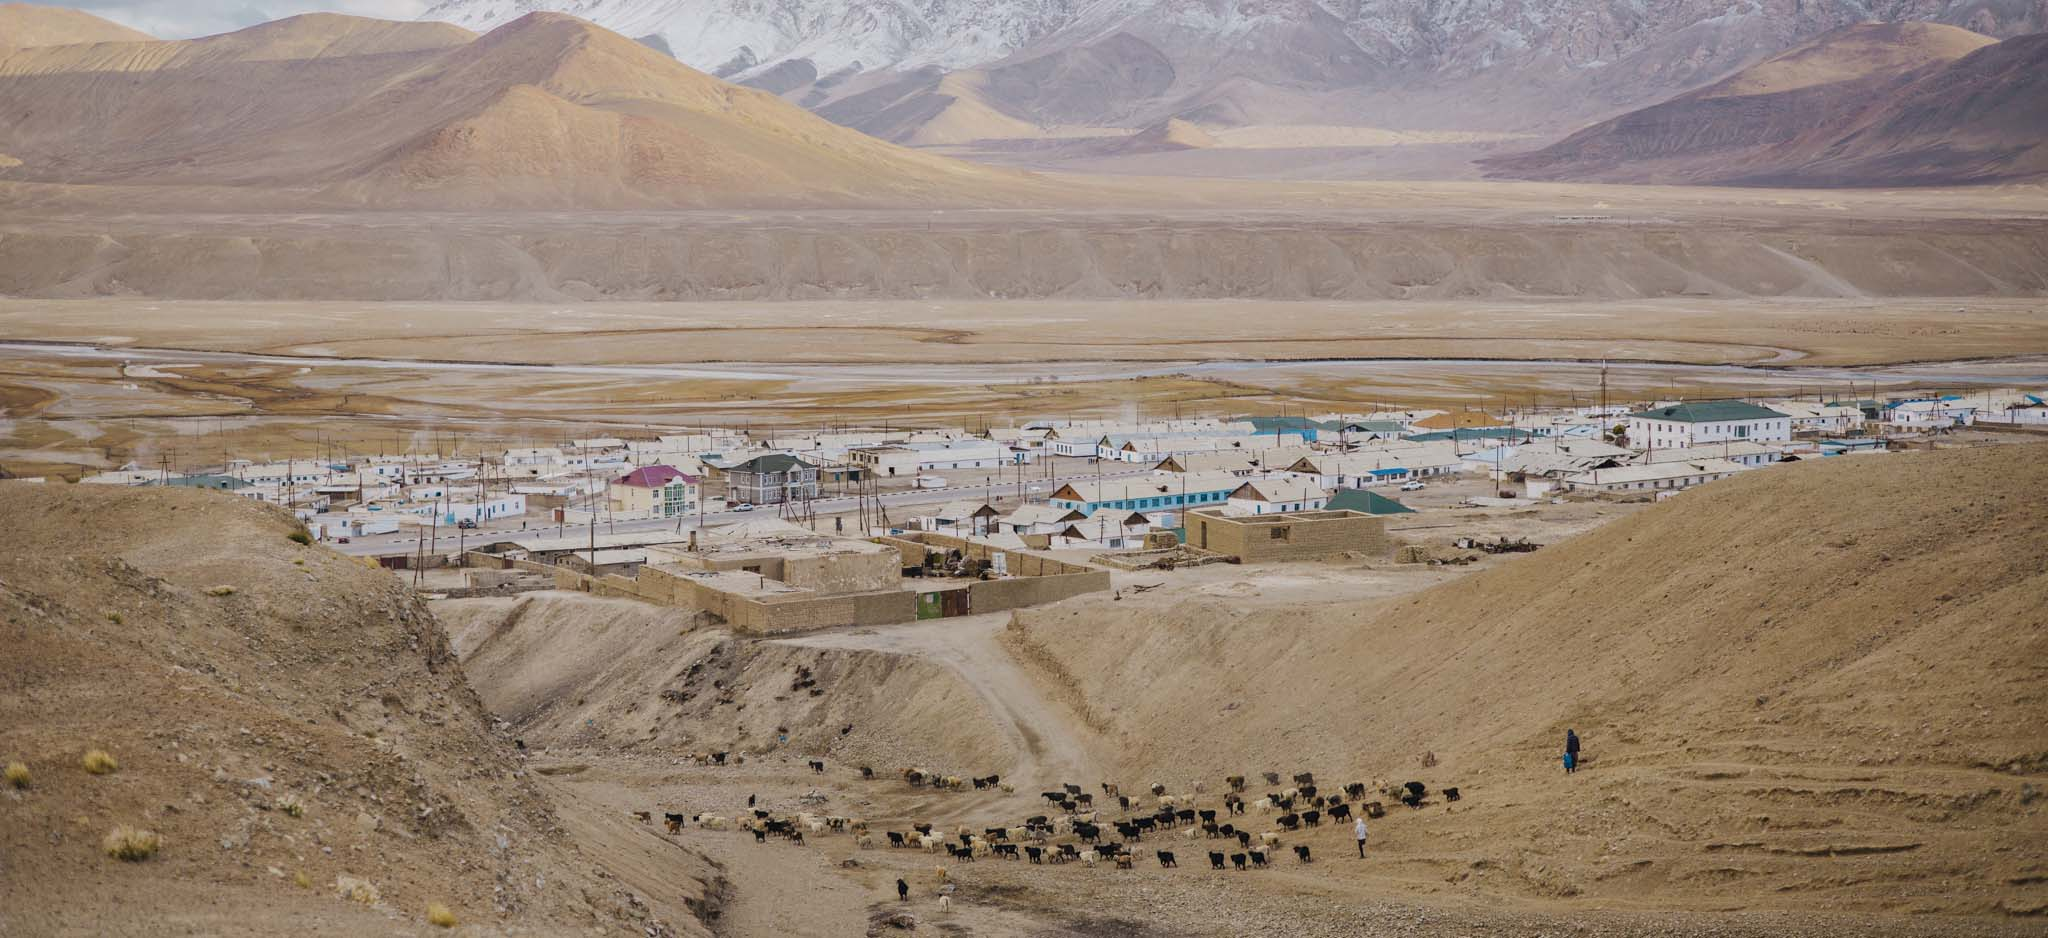 High up in Tajikistan's Pamir mountains, life brings gruelling challenges